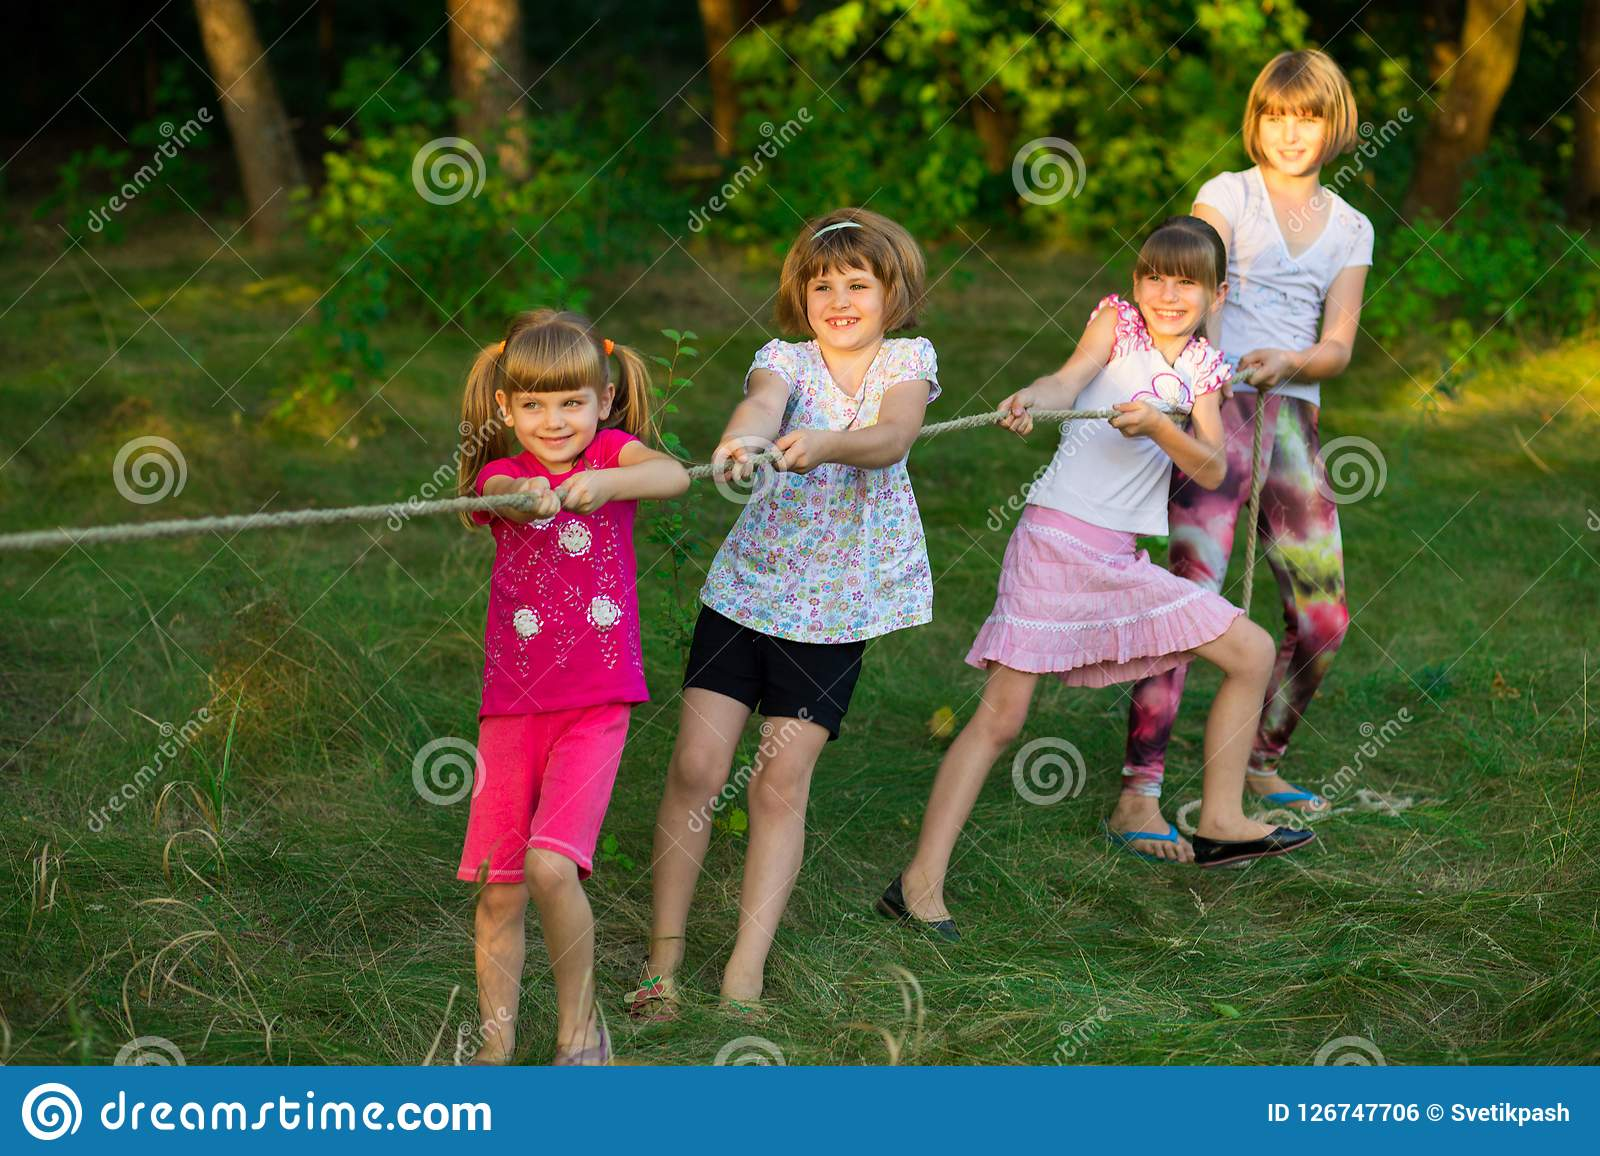 Group of happy children playing tug of war outside on grass. Kids pulling rope at park